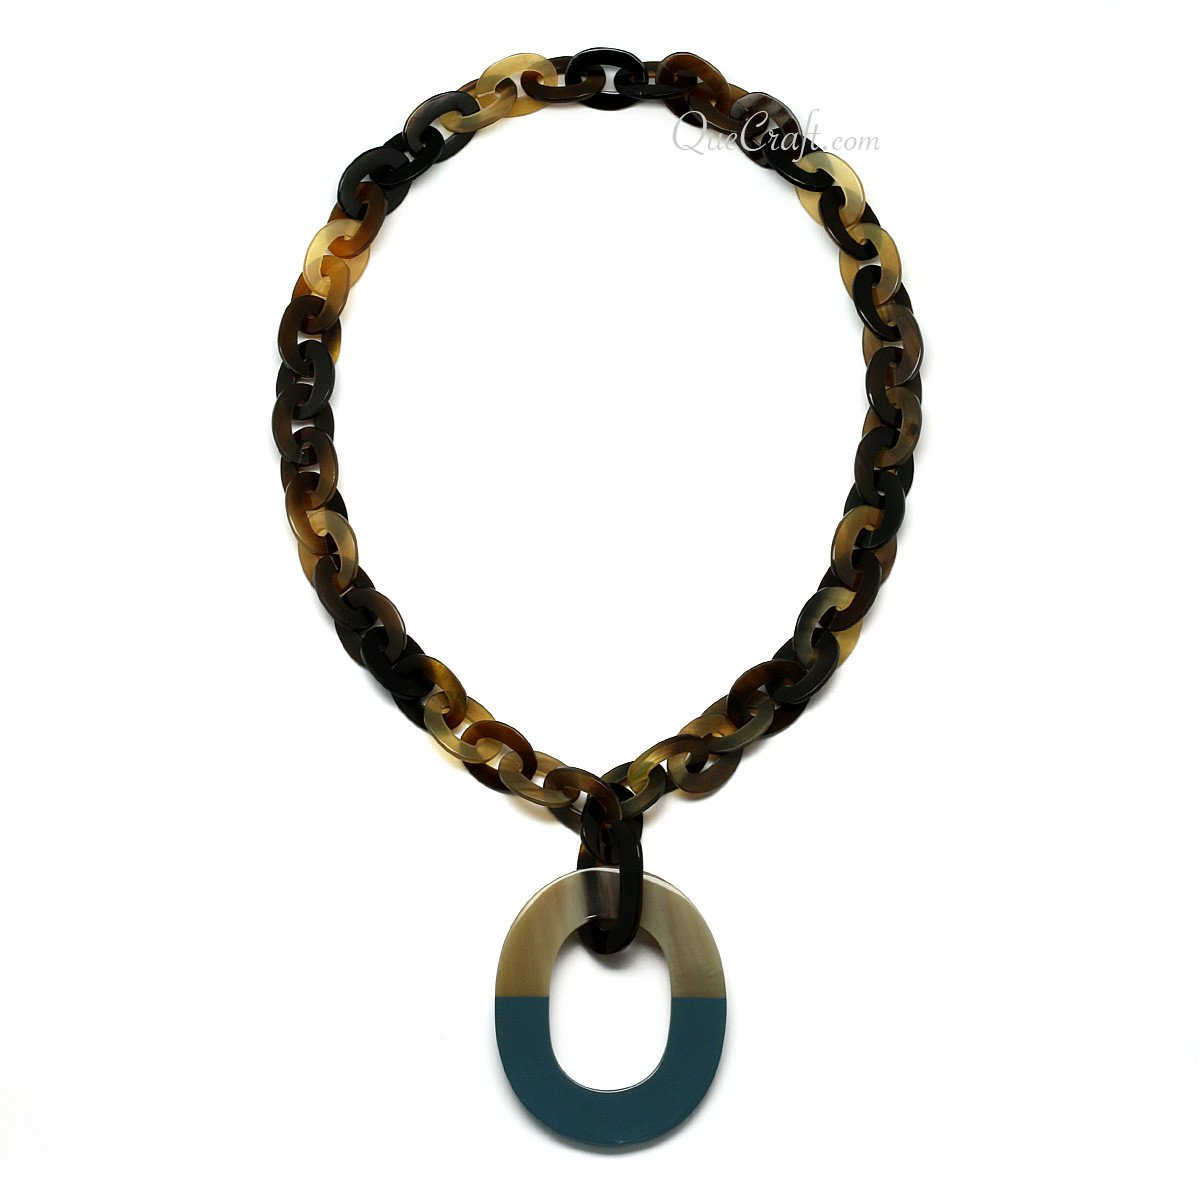 Horn & Lacquer Chain Necklace #10754 - HORN.JEWELRY by QueCraft